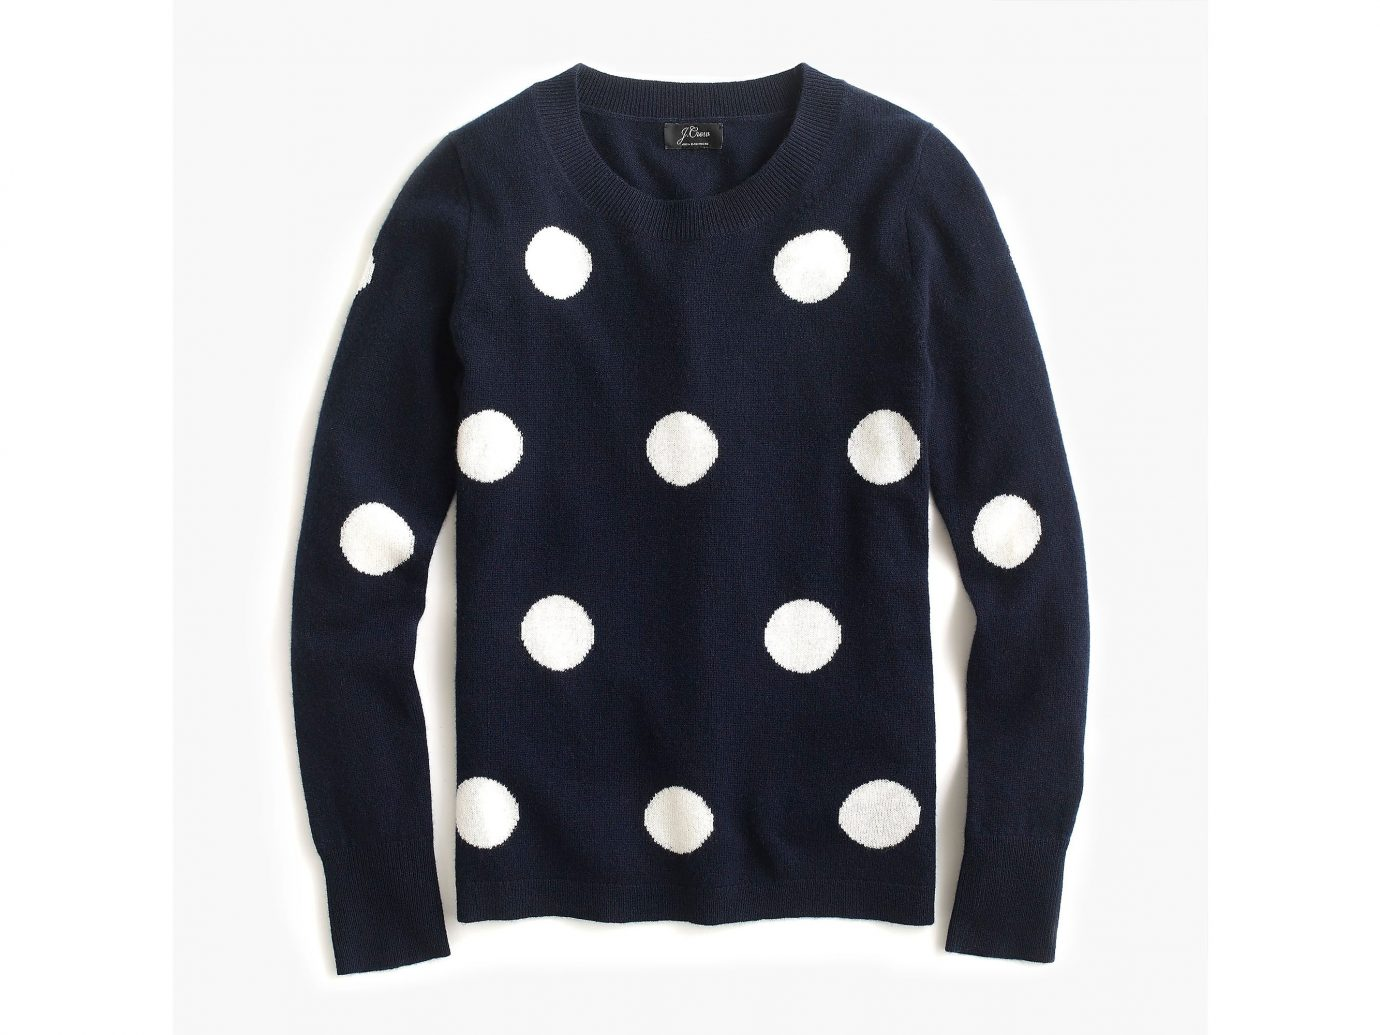 J Crew Long-sleeve everyday cashmere crewneck sweater in polka dot